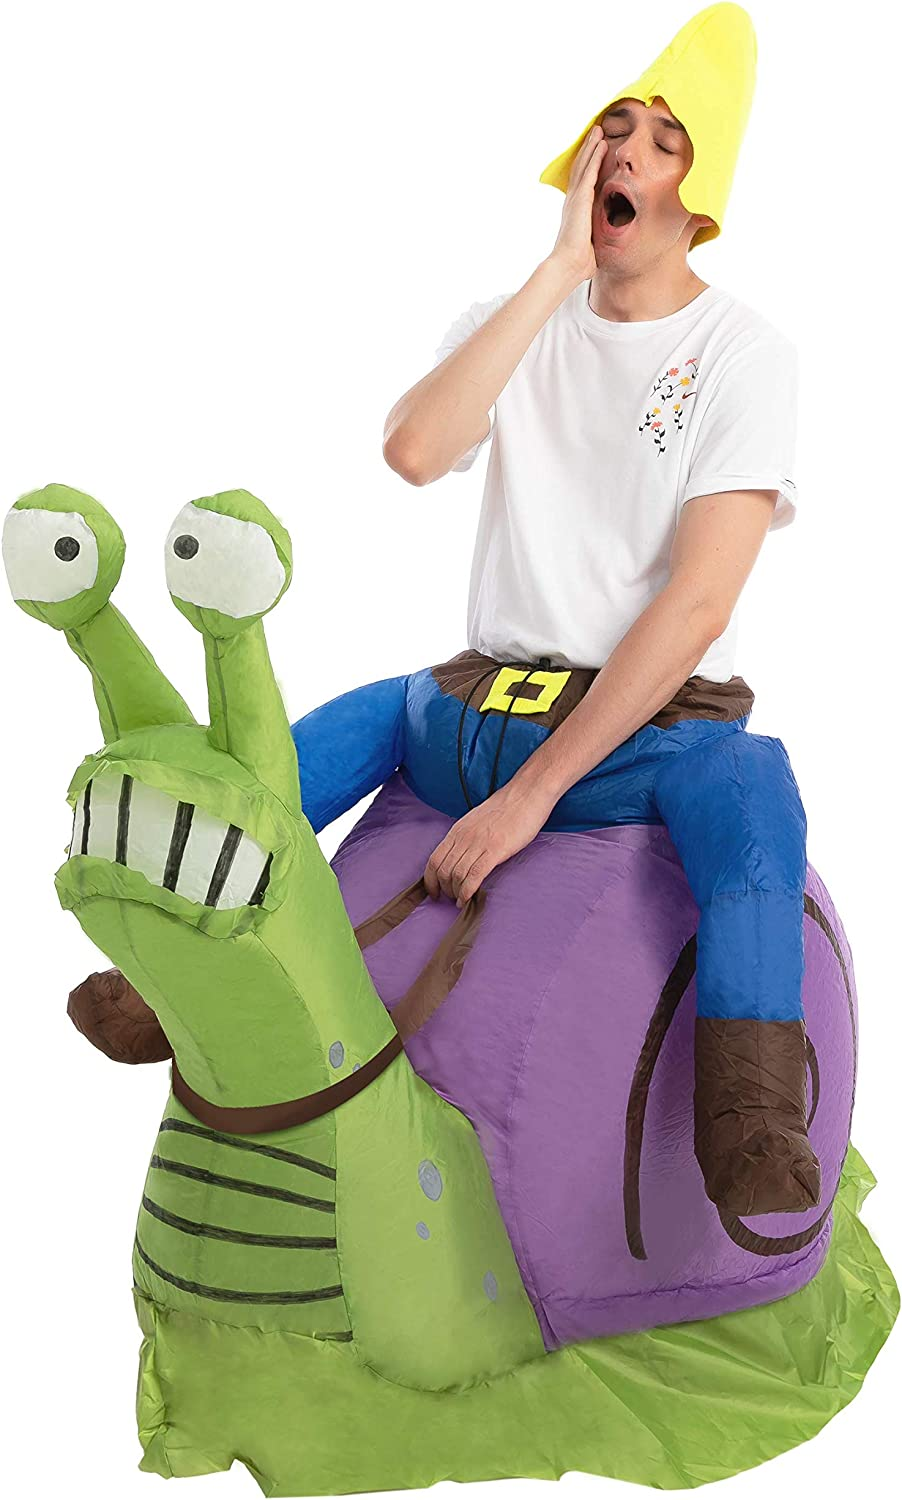 Spooktacular Creations Halloween Inflatable Costume Gnome Ride On Snail Inflatable Costume - Adult Unisex One Size Green and Purple